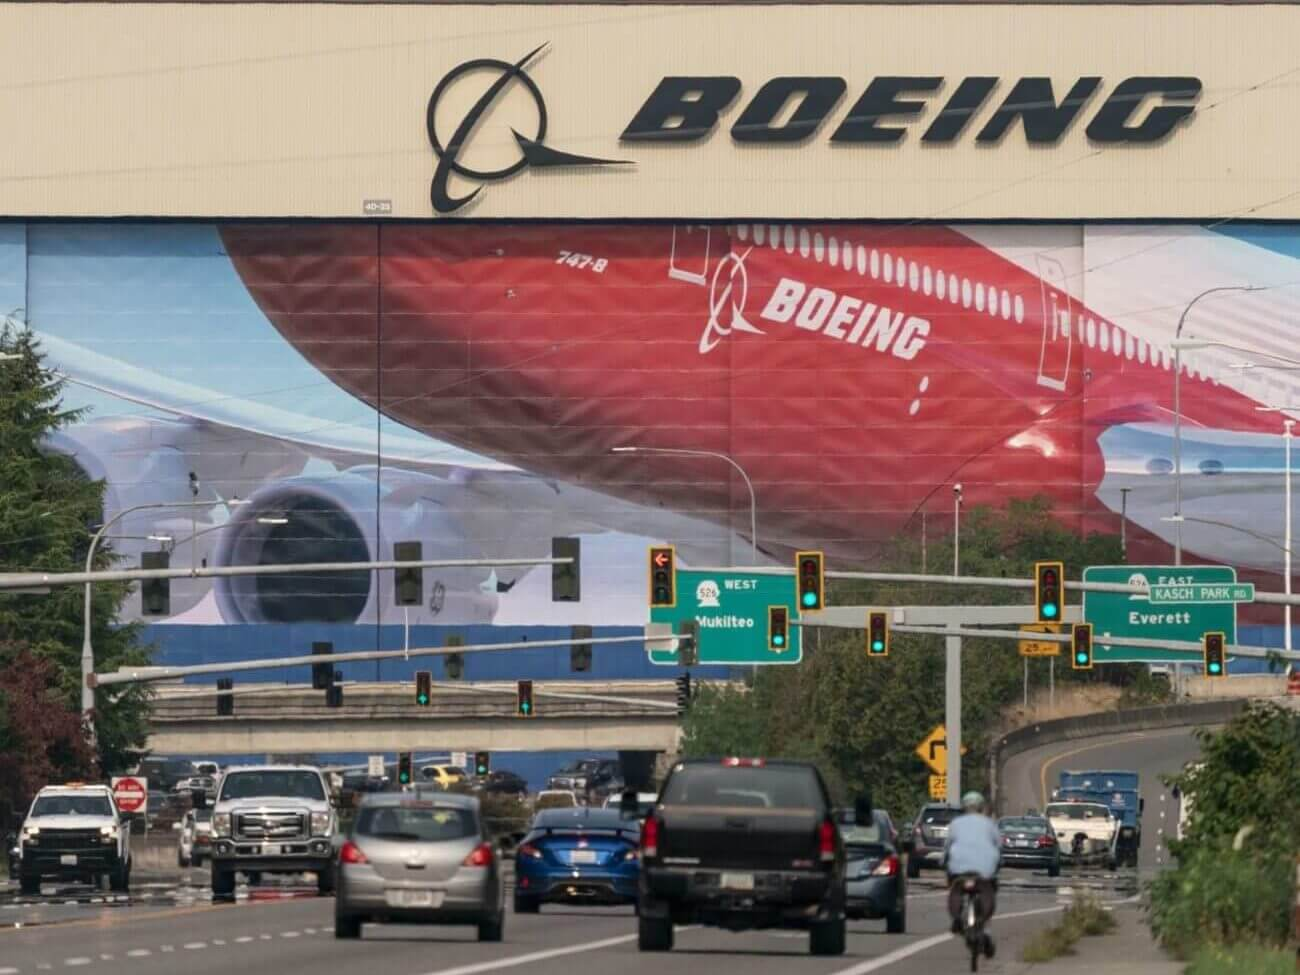 Boeing Is the Most contemporary Firm to Dart a Adversarial Industry Surroundings